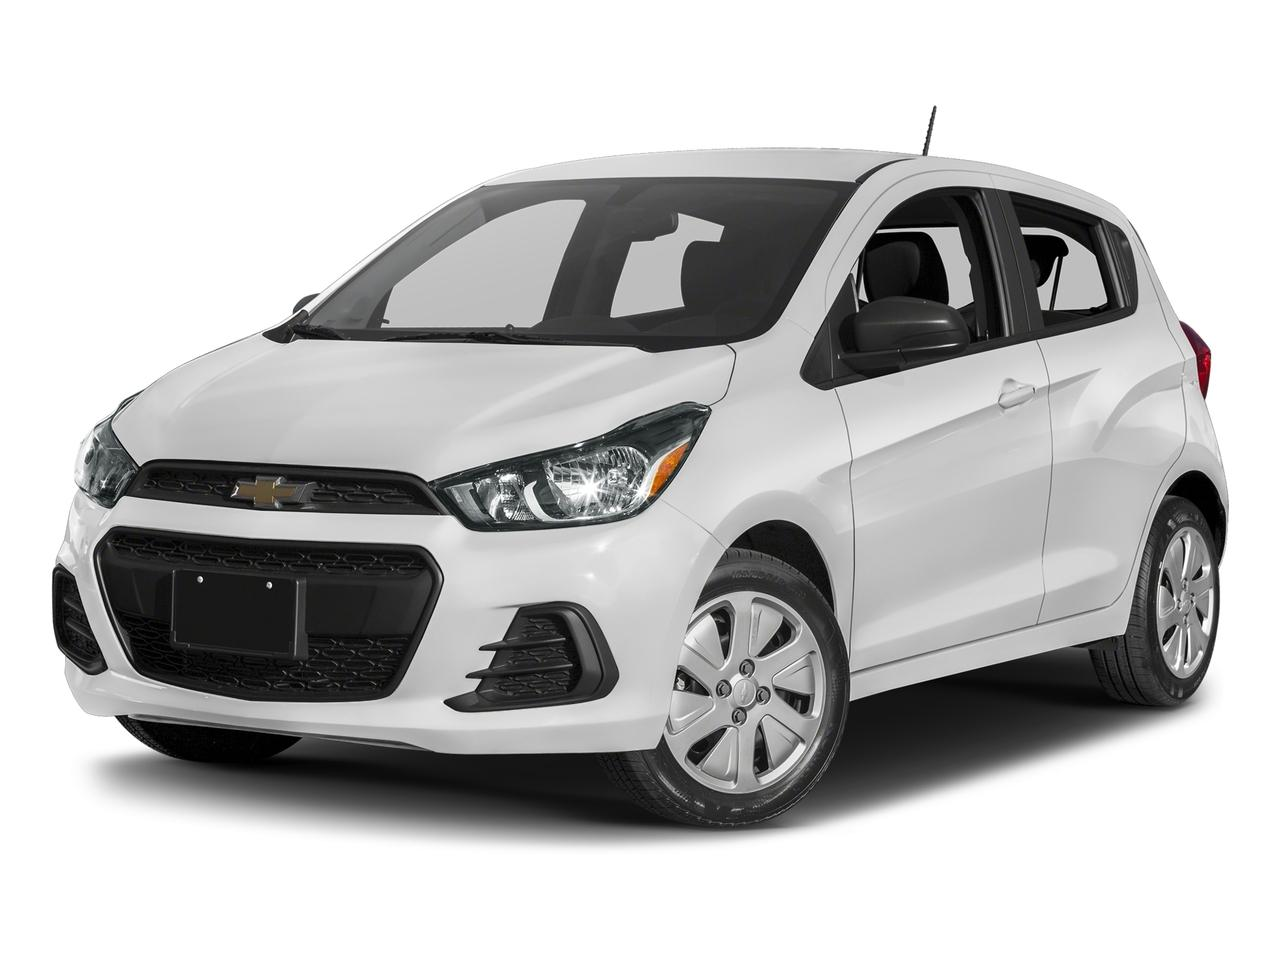 2017 Chevrolet Spark Vehicle Photo in Peoria, IL 61615